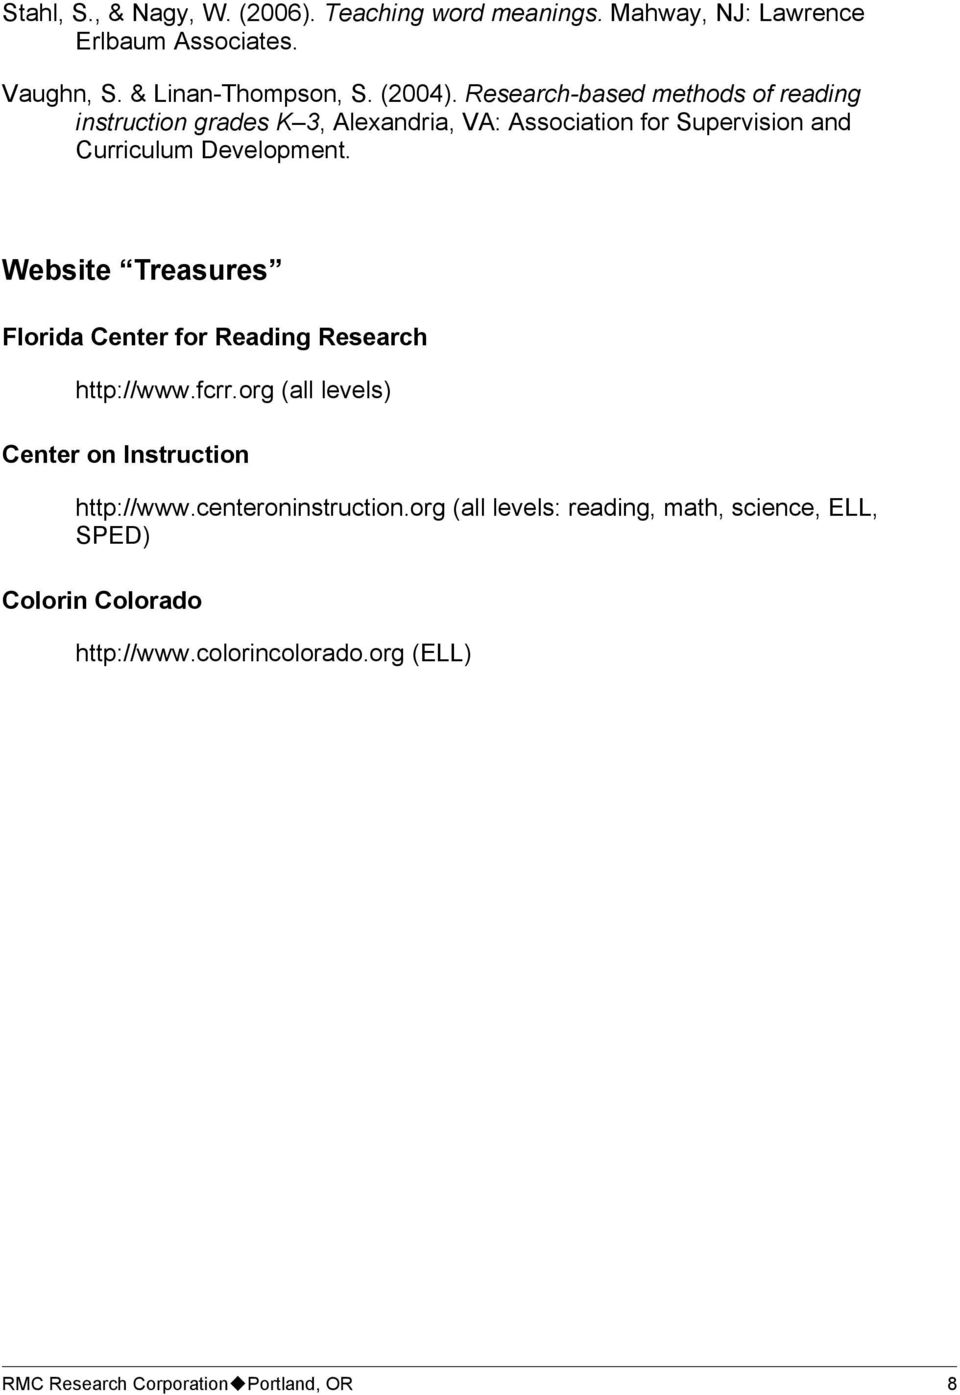 Website Treasures Florida Center for Reading Research http://www.fcrr.org (all levels) Center on Instruction http://www.